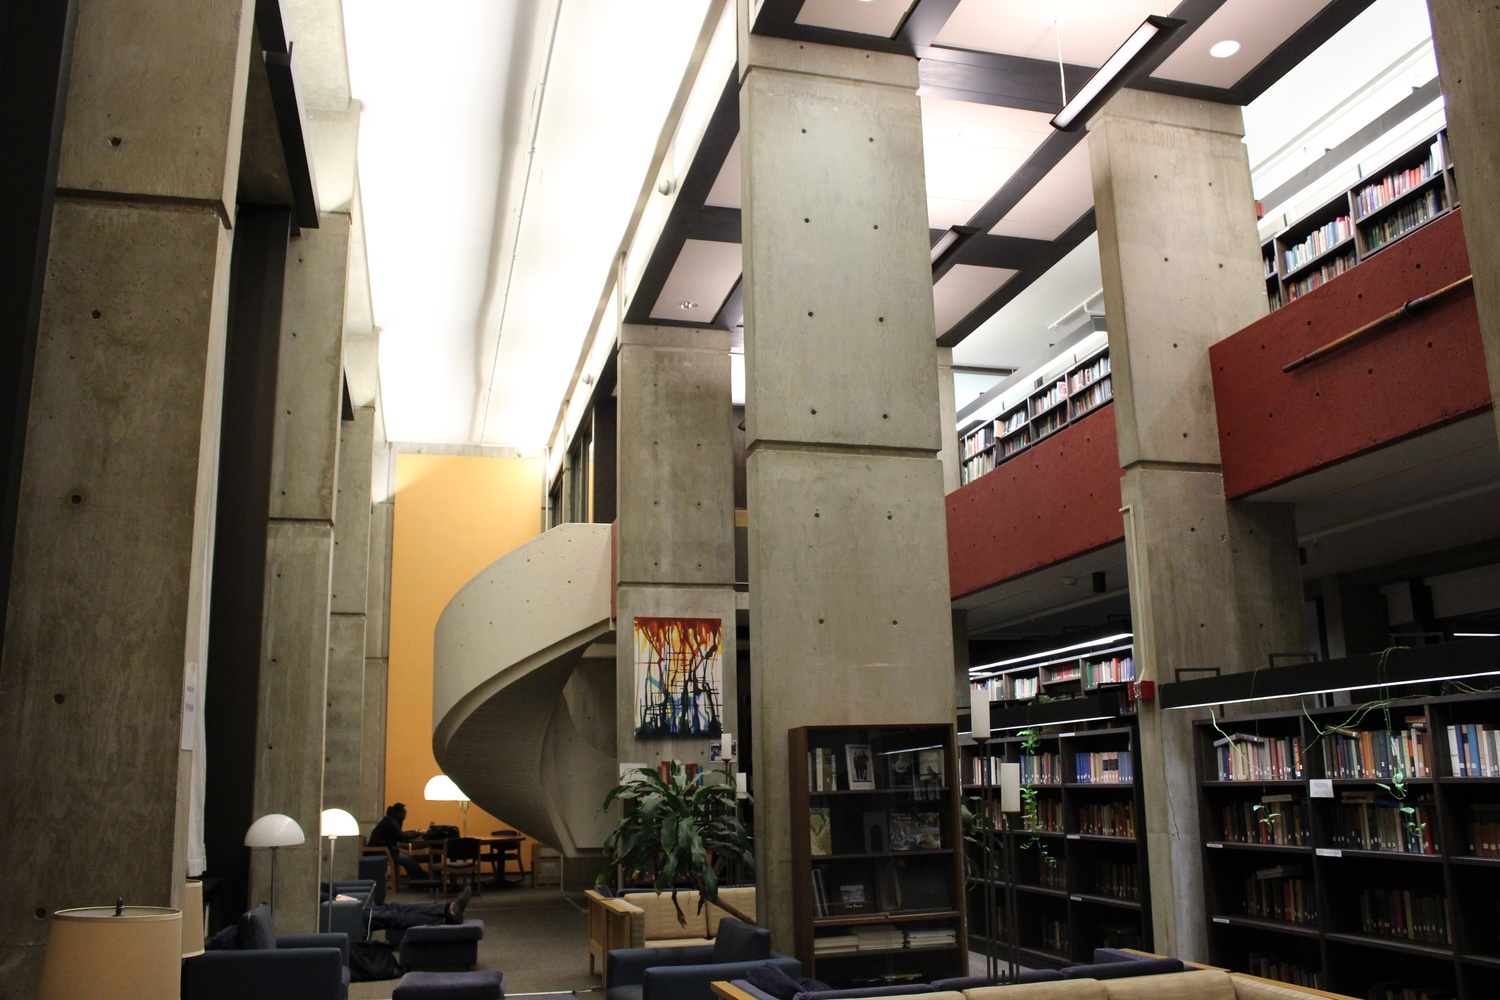 Mather's Library, complete with spiral staircase and quiet study areas.